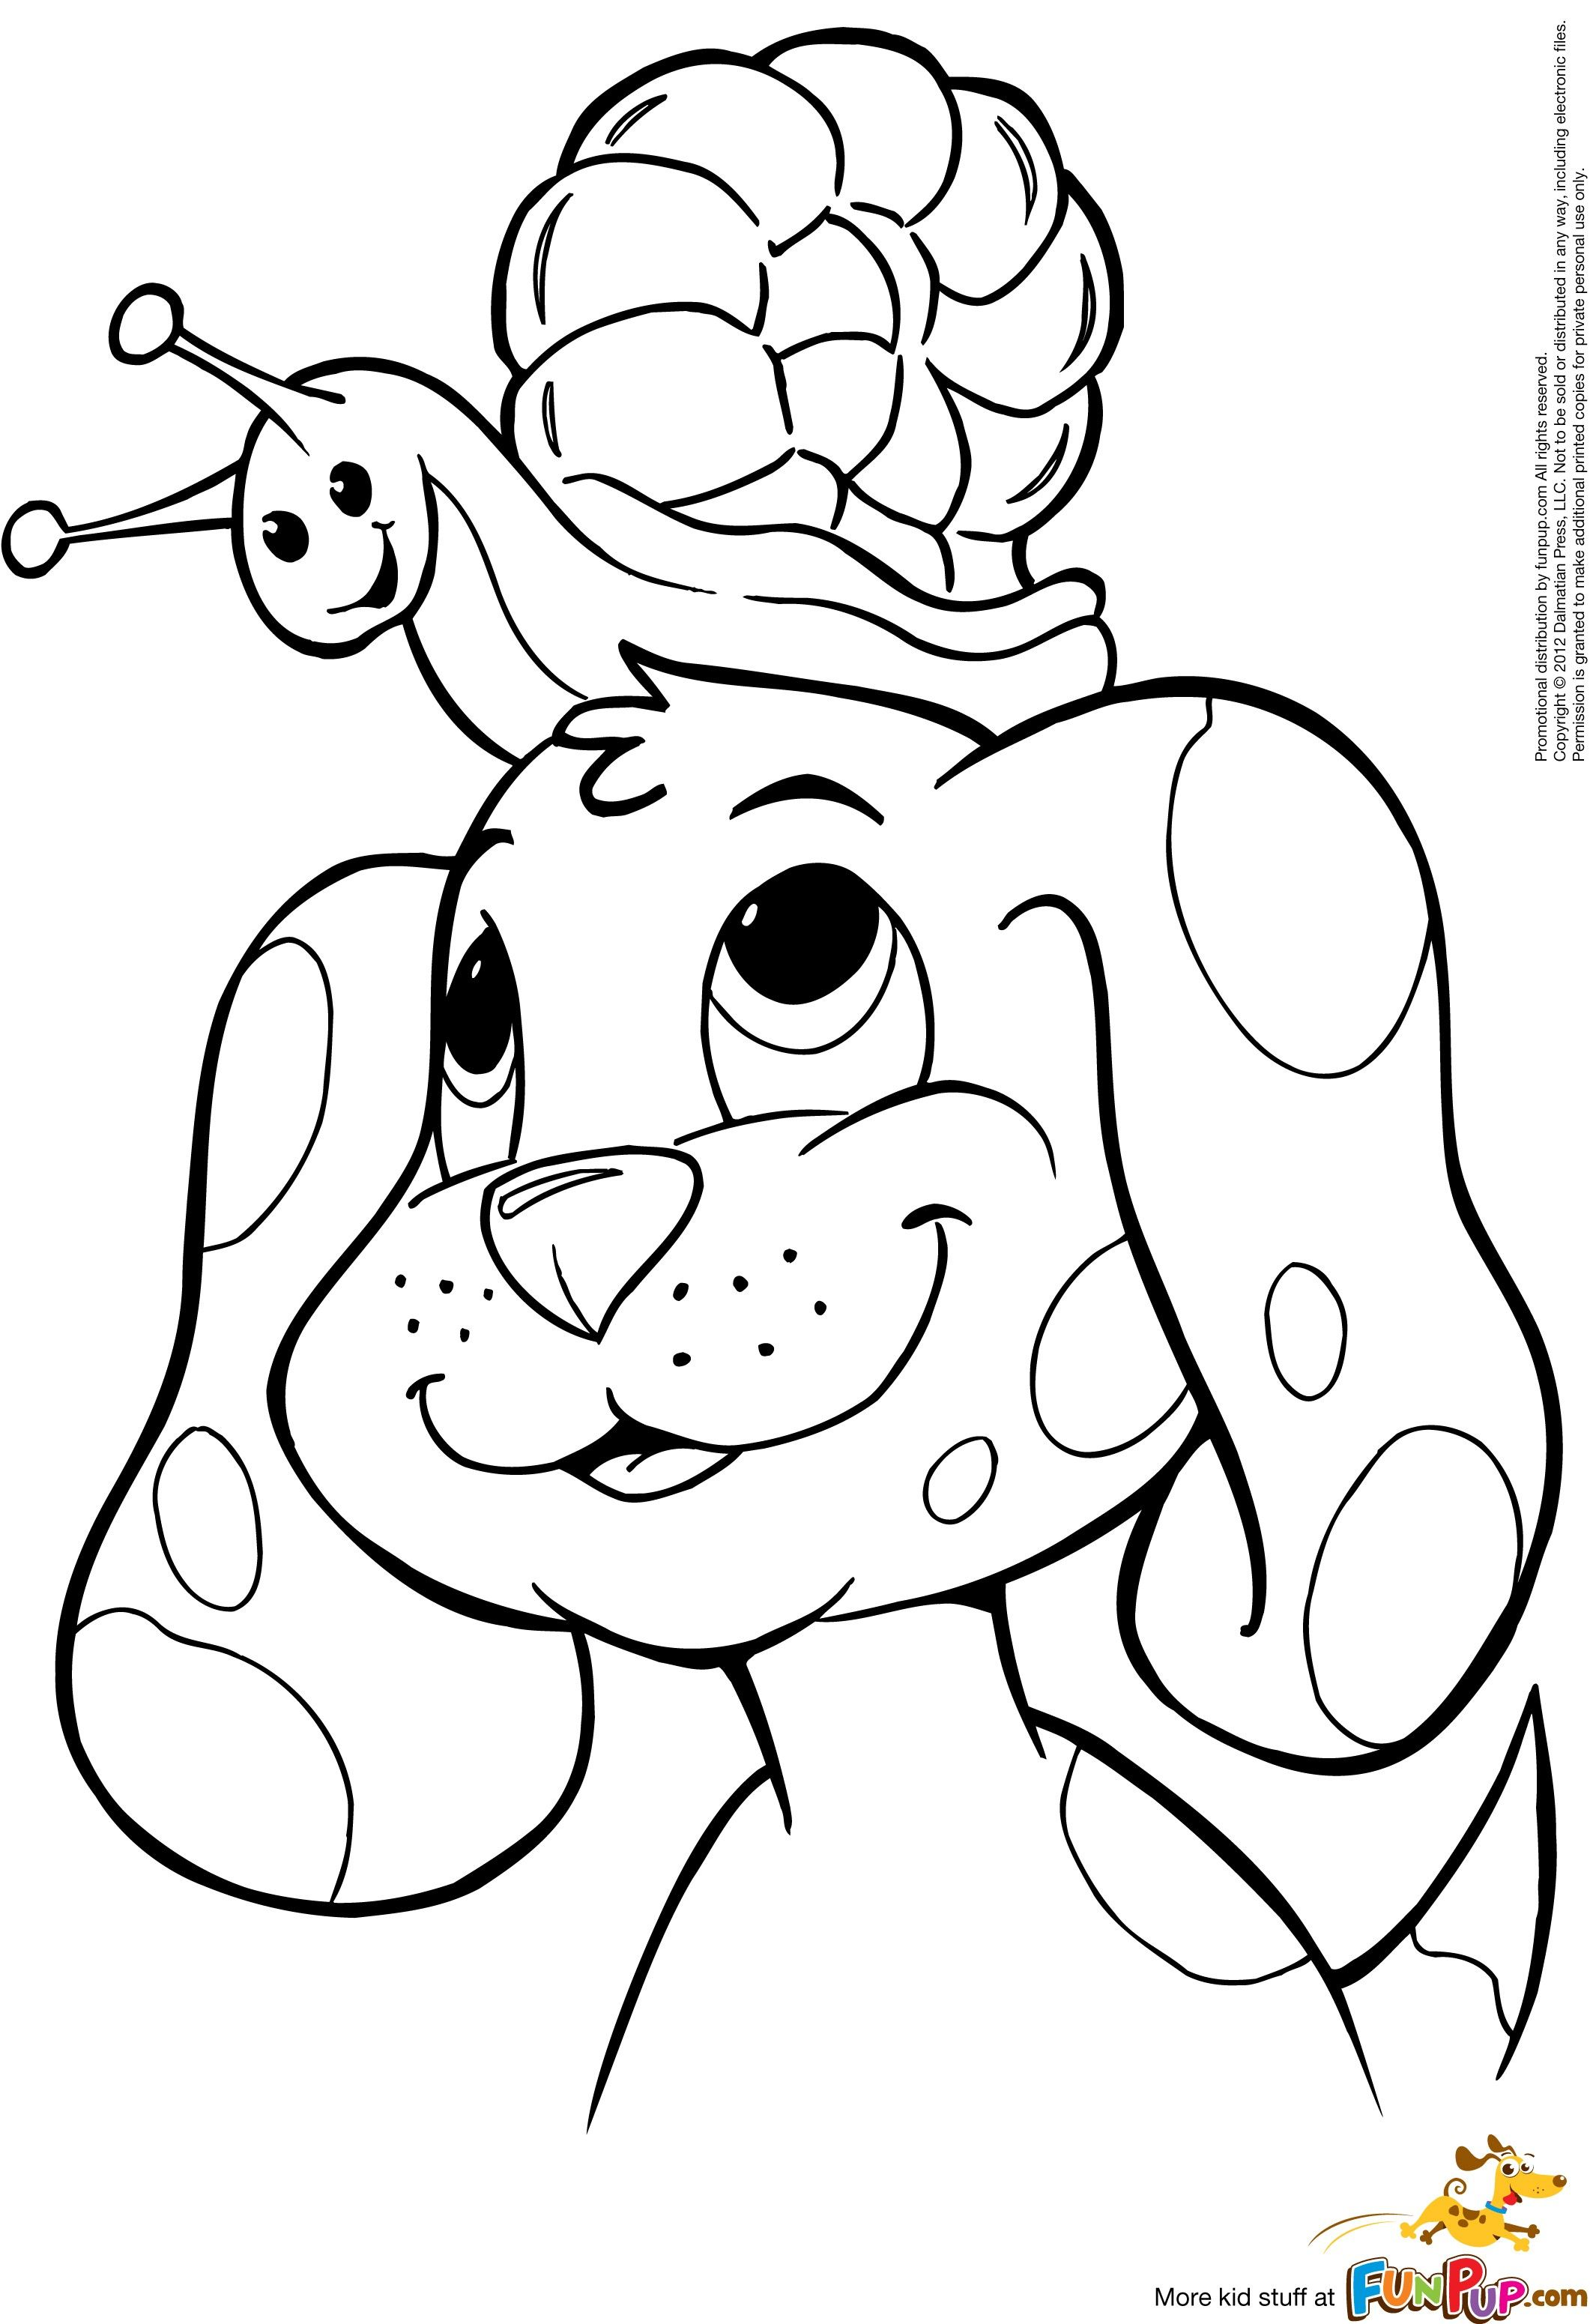 Coloring Page For Girls Pages Drawasioinfo Incridible Cute Printable Kids Colouring